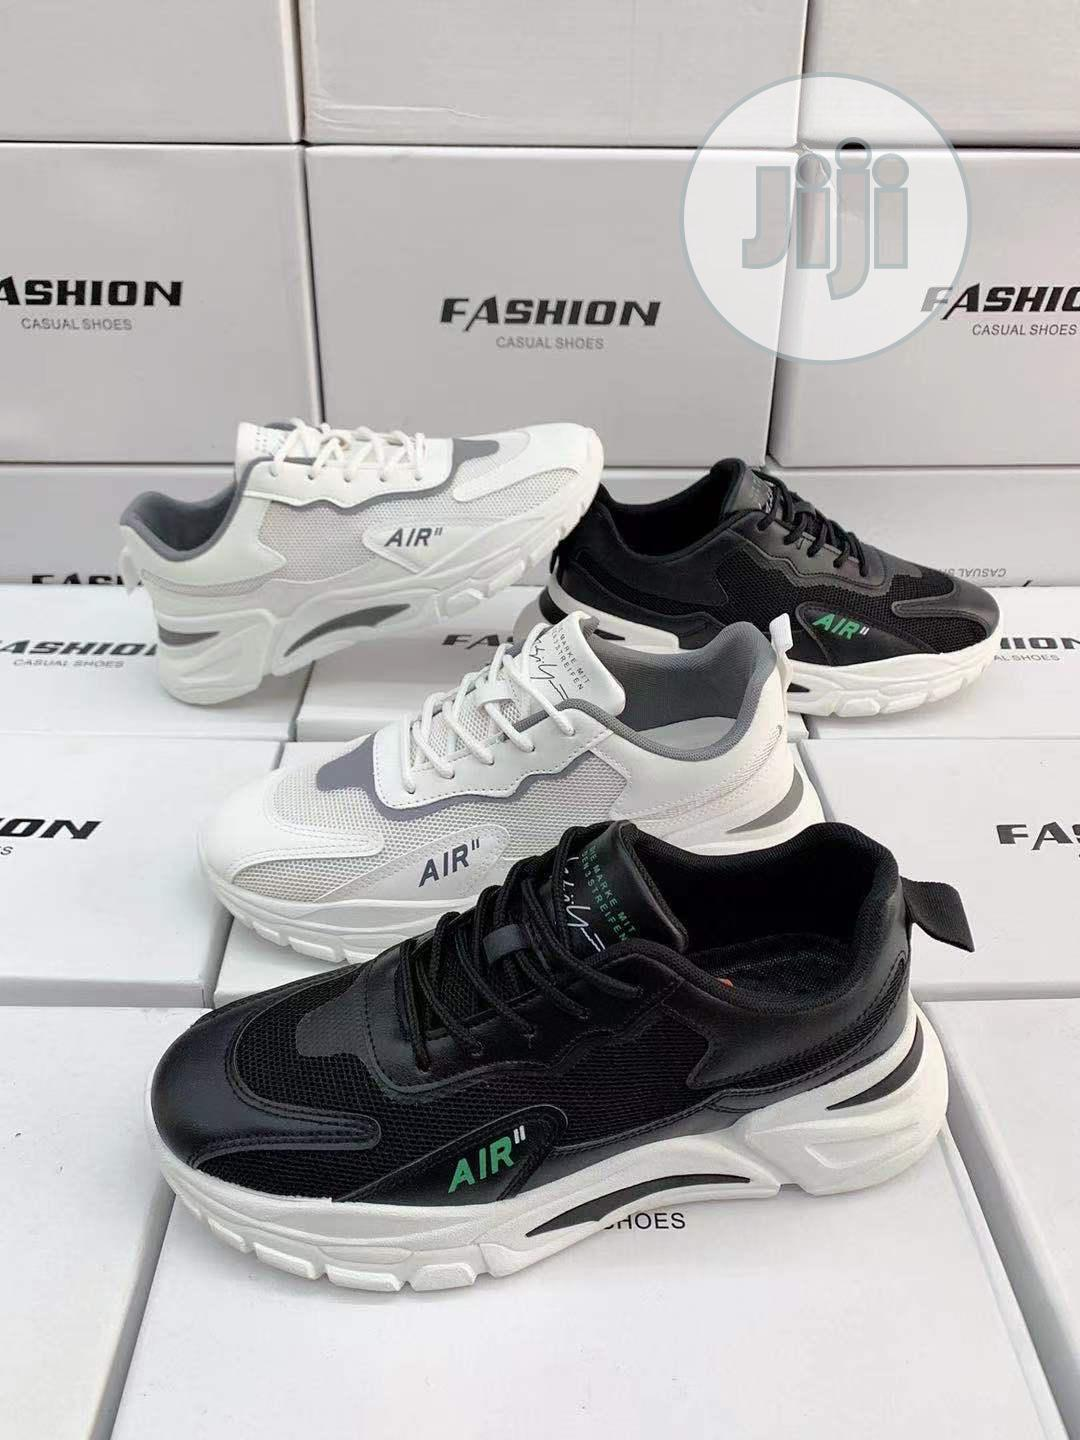 Unisex Sneakers | Shoes for sale in Akure, Ondo State, Nigeria